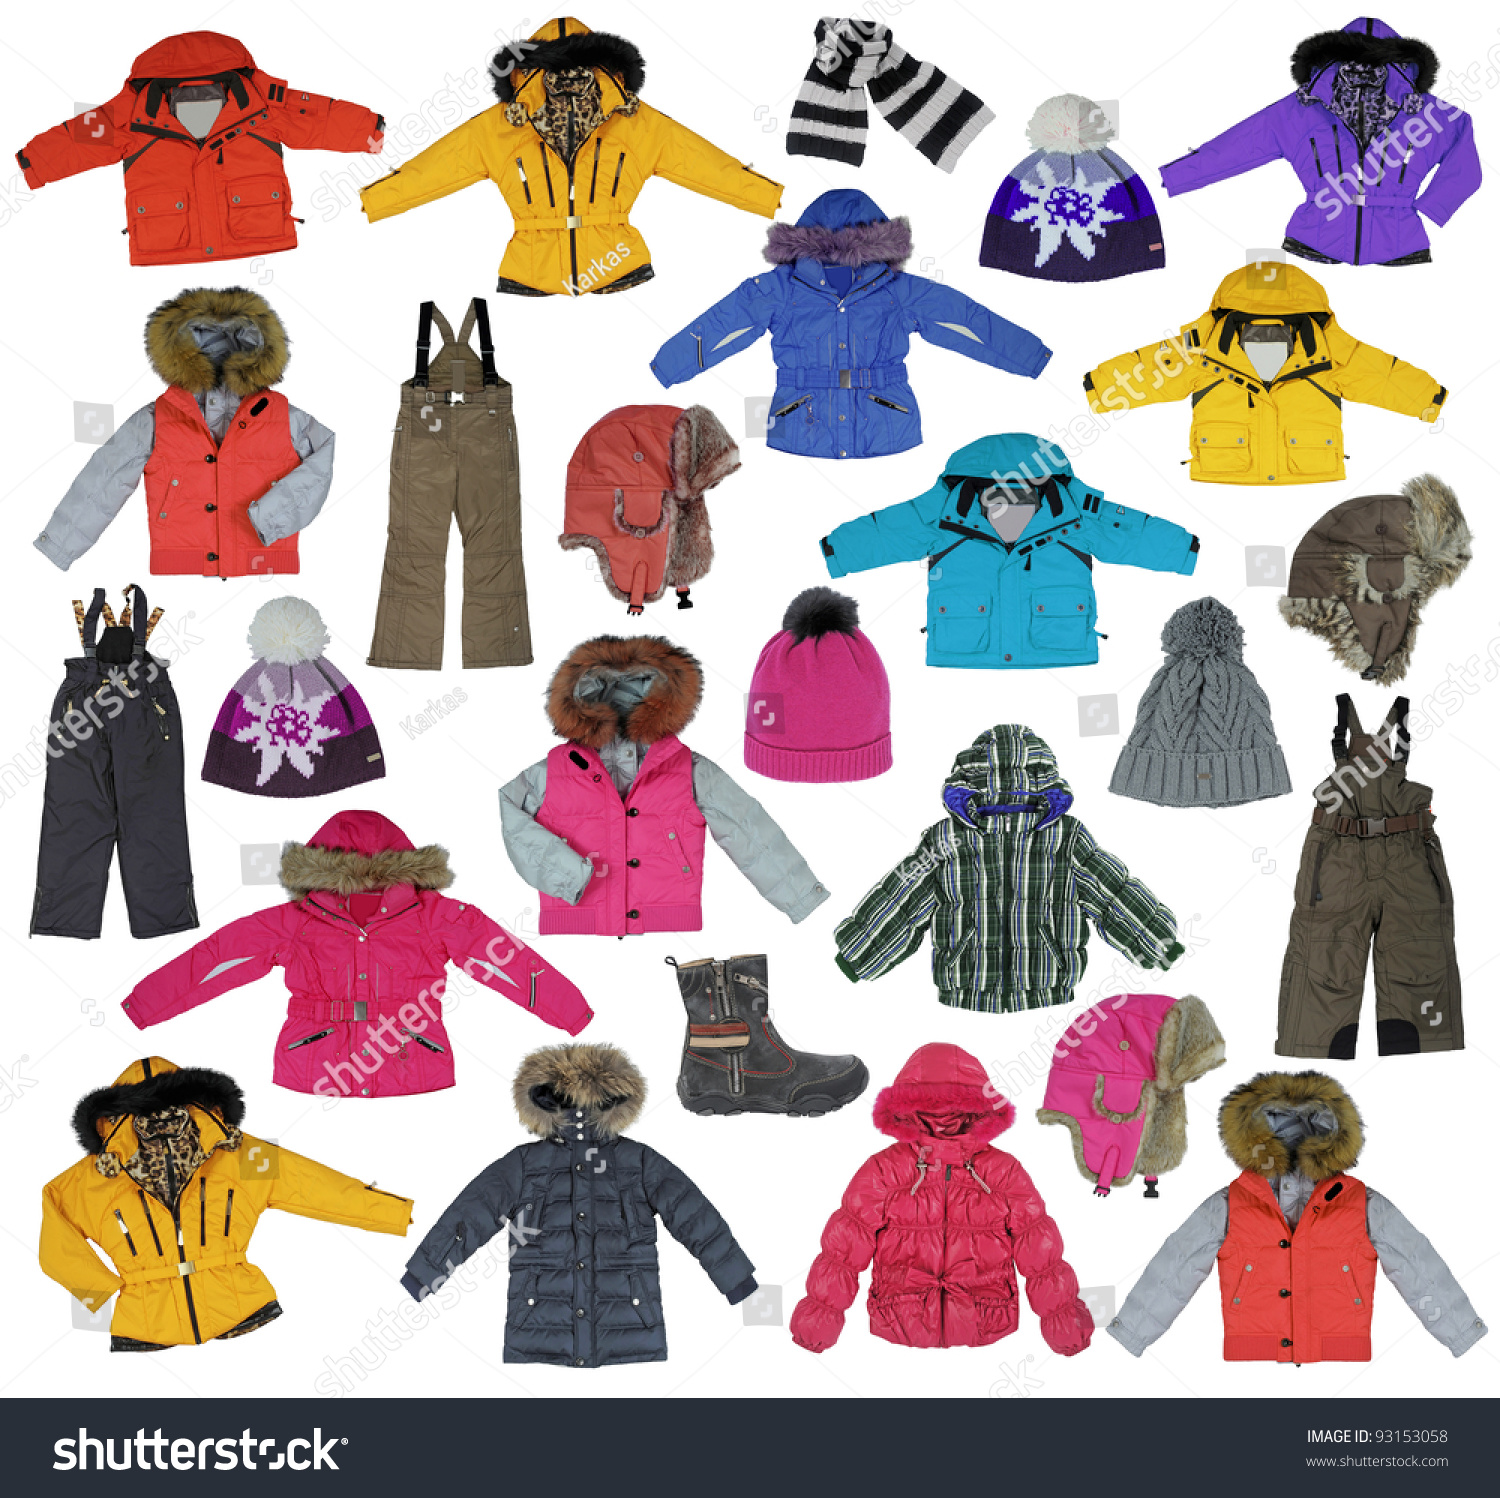 Collection childrens winter clothing stock photo 93153058 shutterstock Mla winter style fashion set